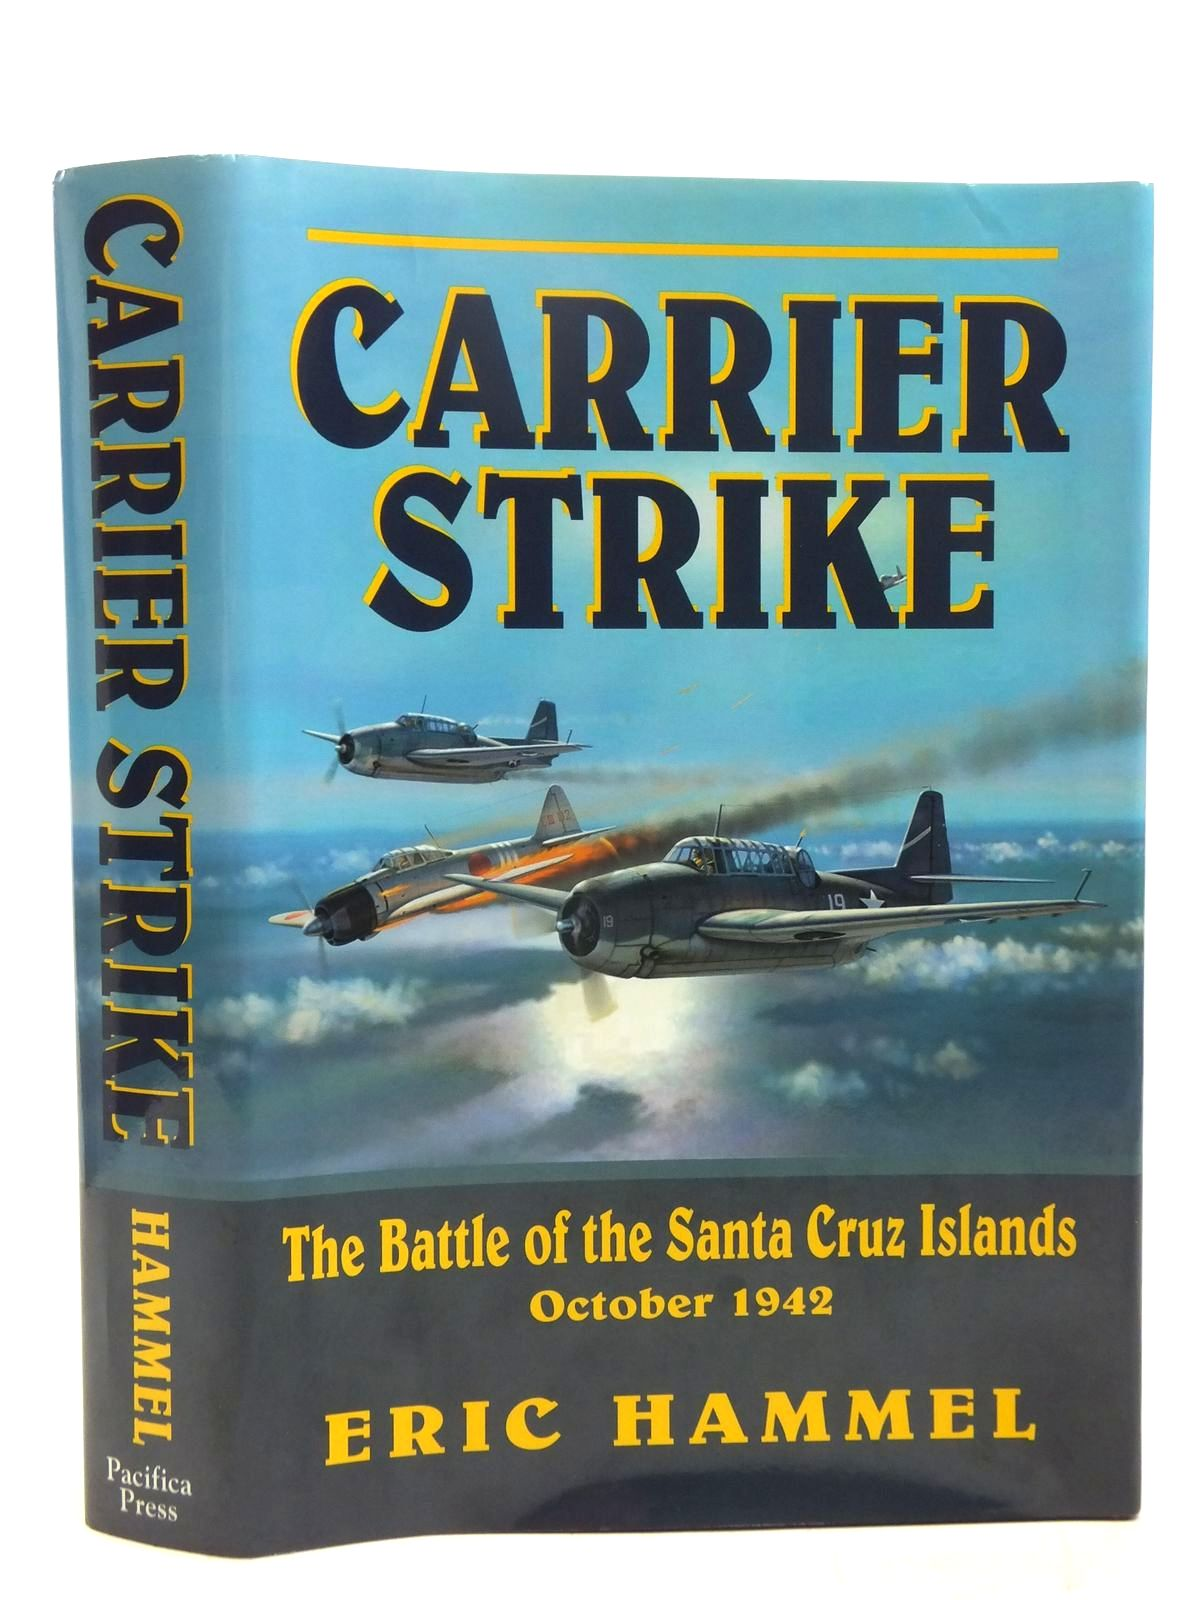 Photo of CARRIER STRIKE THE BATTLE OF THE SANTA CRUZ ISLANDS OCTOBER 1942 written by Hammel, Eric published by Pacifica Press (STOCK CODE: 1607694)  for sale by Stella & Rose's Books